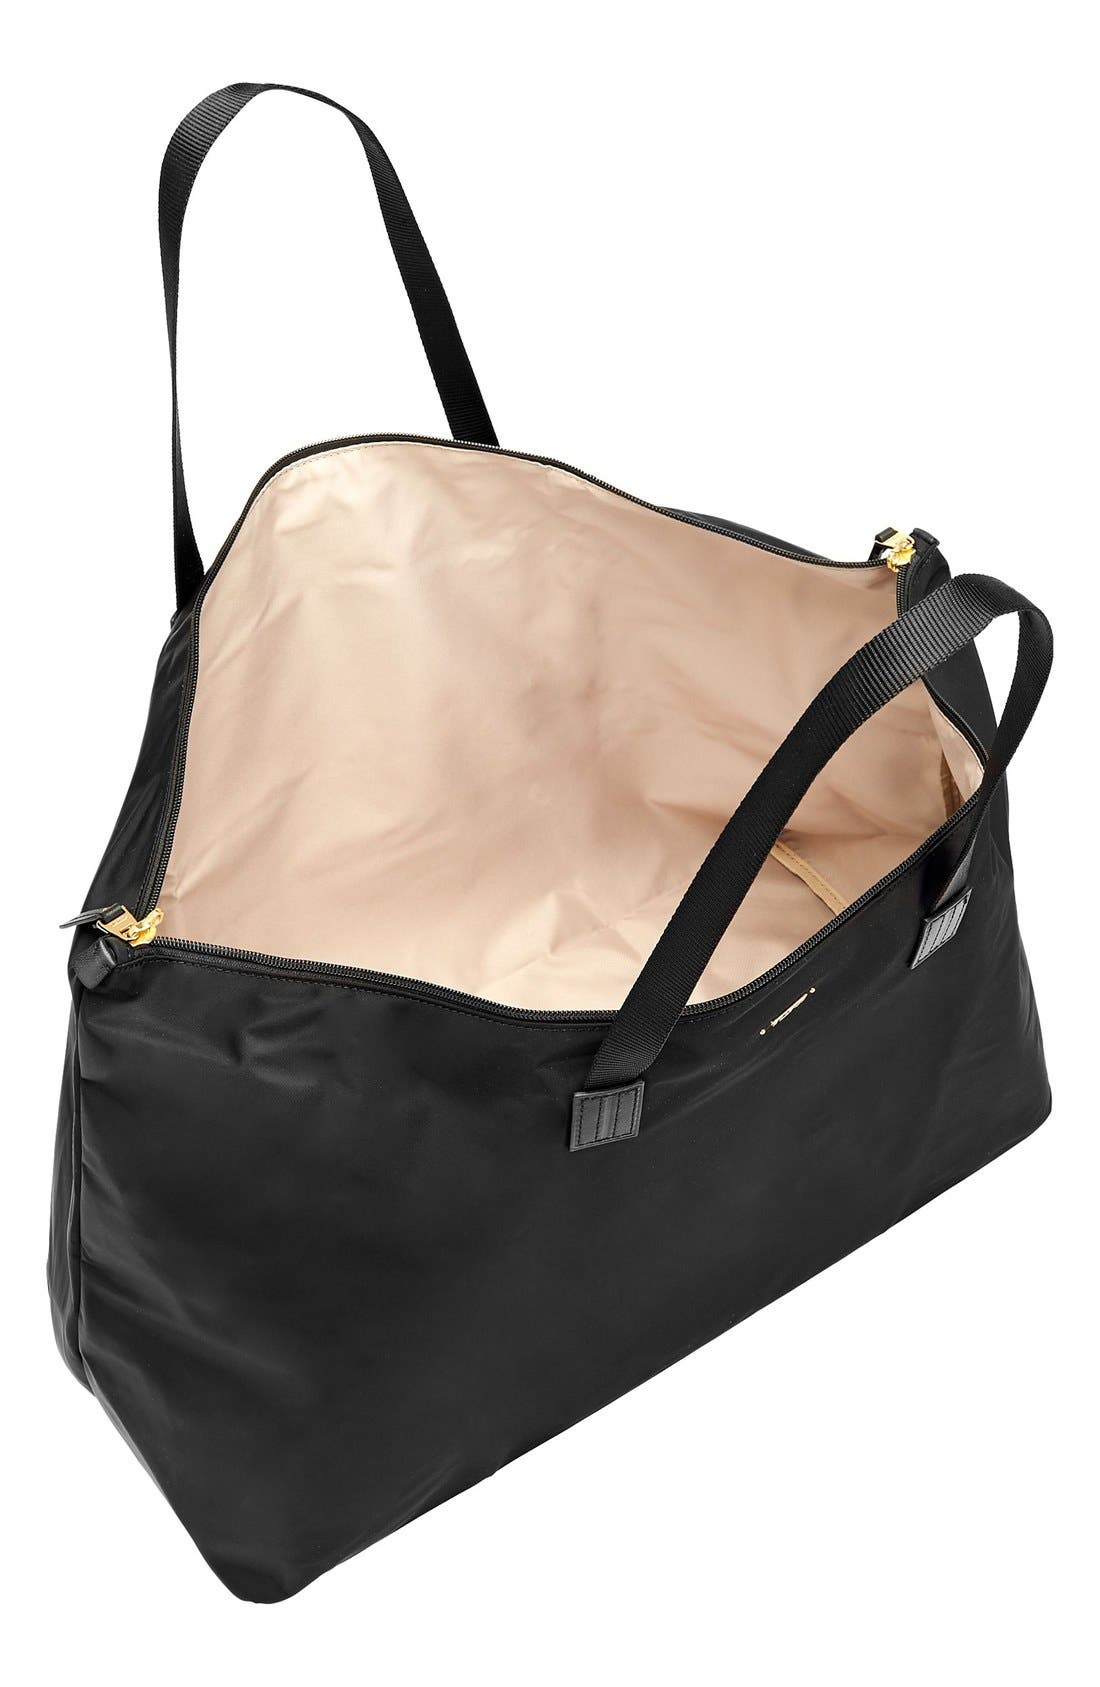 Just in Case Nylon Travel Tote,                             Alternate thumbnail 2, color,                             Black